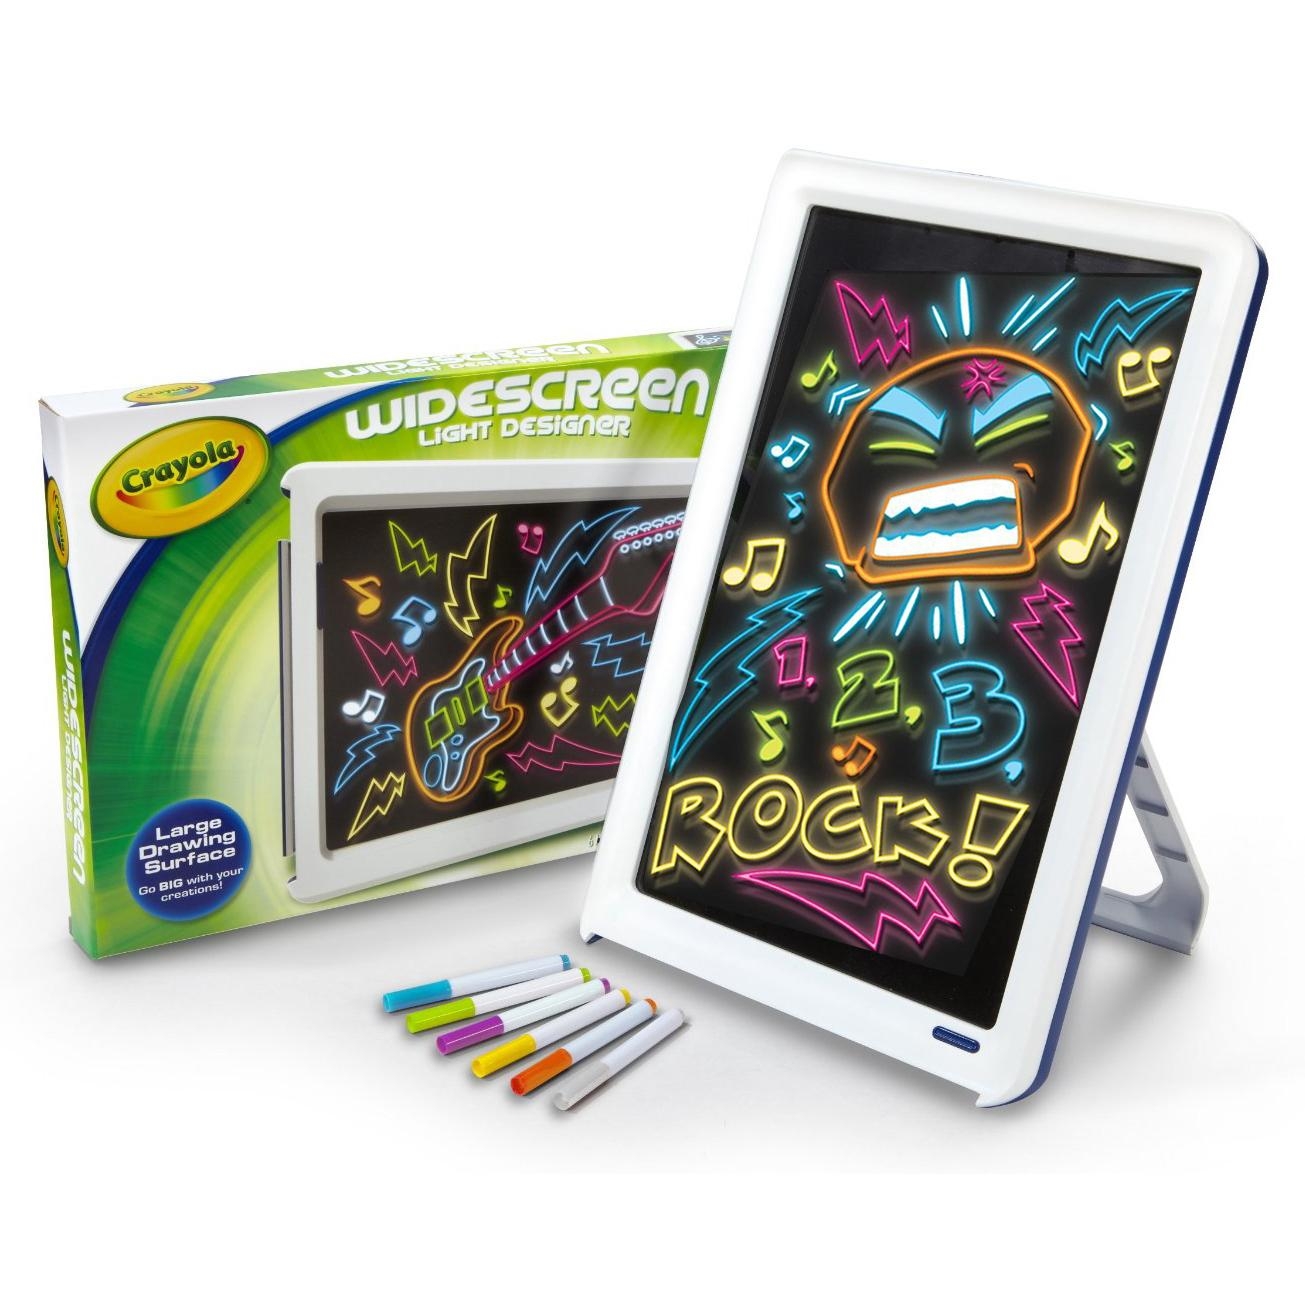 Crayola Widescreen Light Up Designer Childrens Kids Colouring Drawing Board Set Ebay